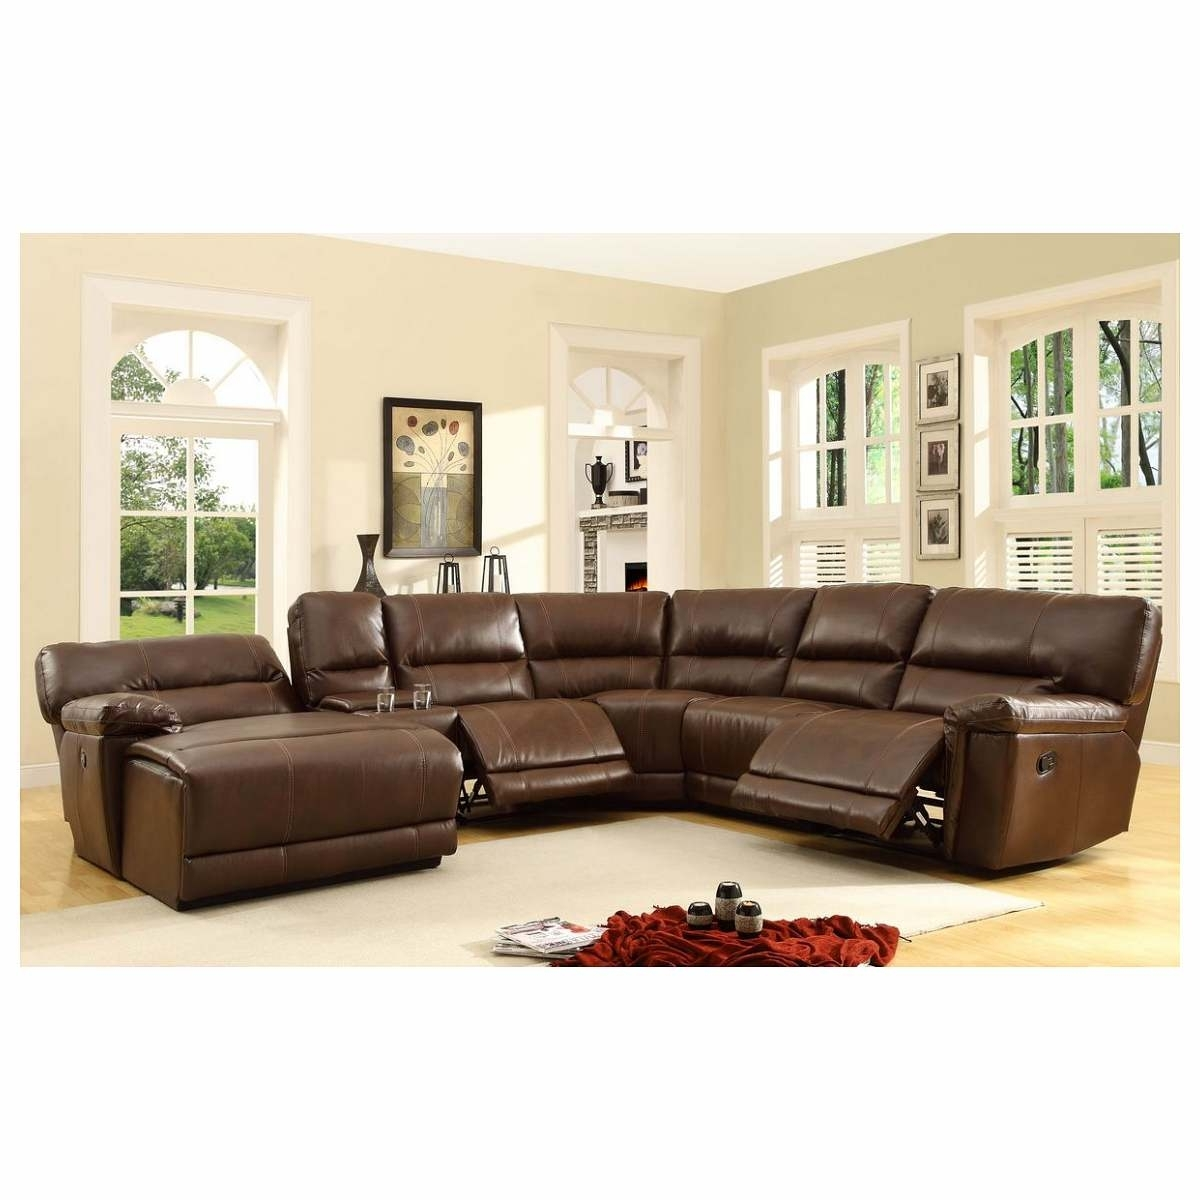 6 Pc Blythe Collection Brown Bonded Leather Match Upholstered In Most Popular Durham Region Sectional Sofas (View 2 of 15)